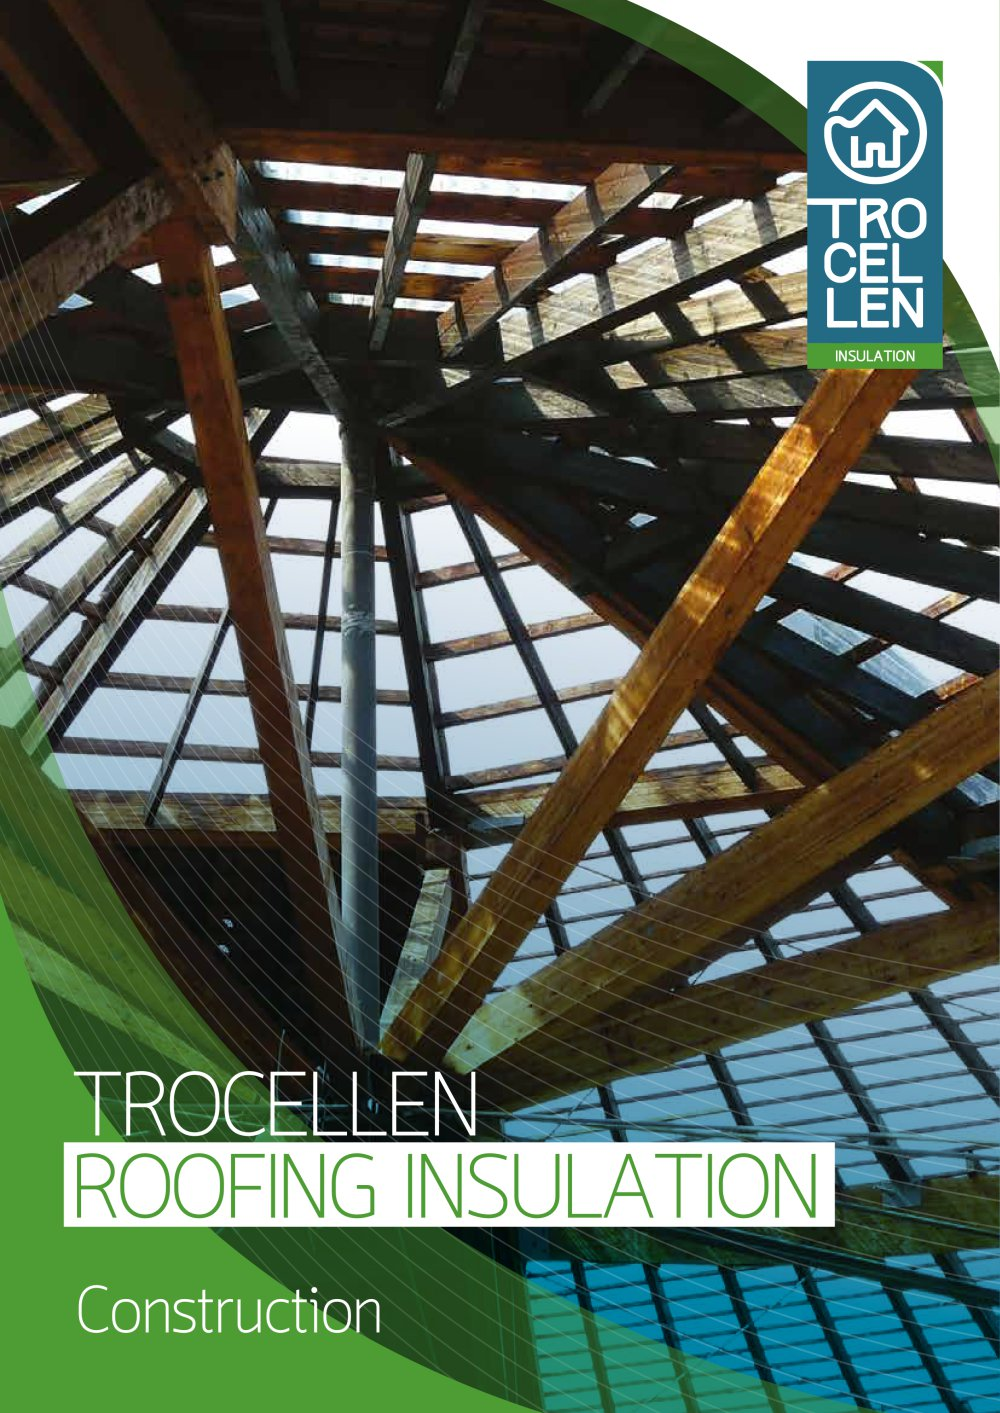 TROCELLEN Roofing Insulation   Construction   1 / 6 Pages